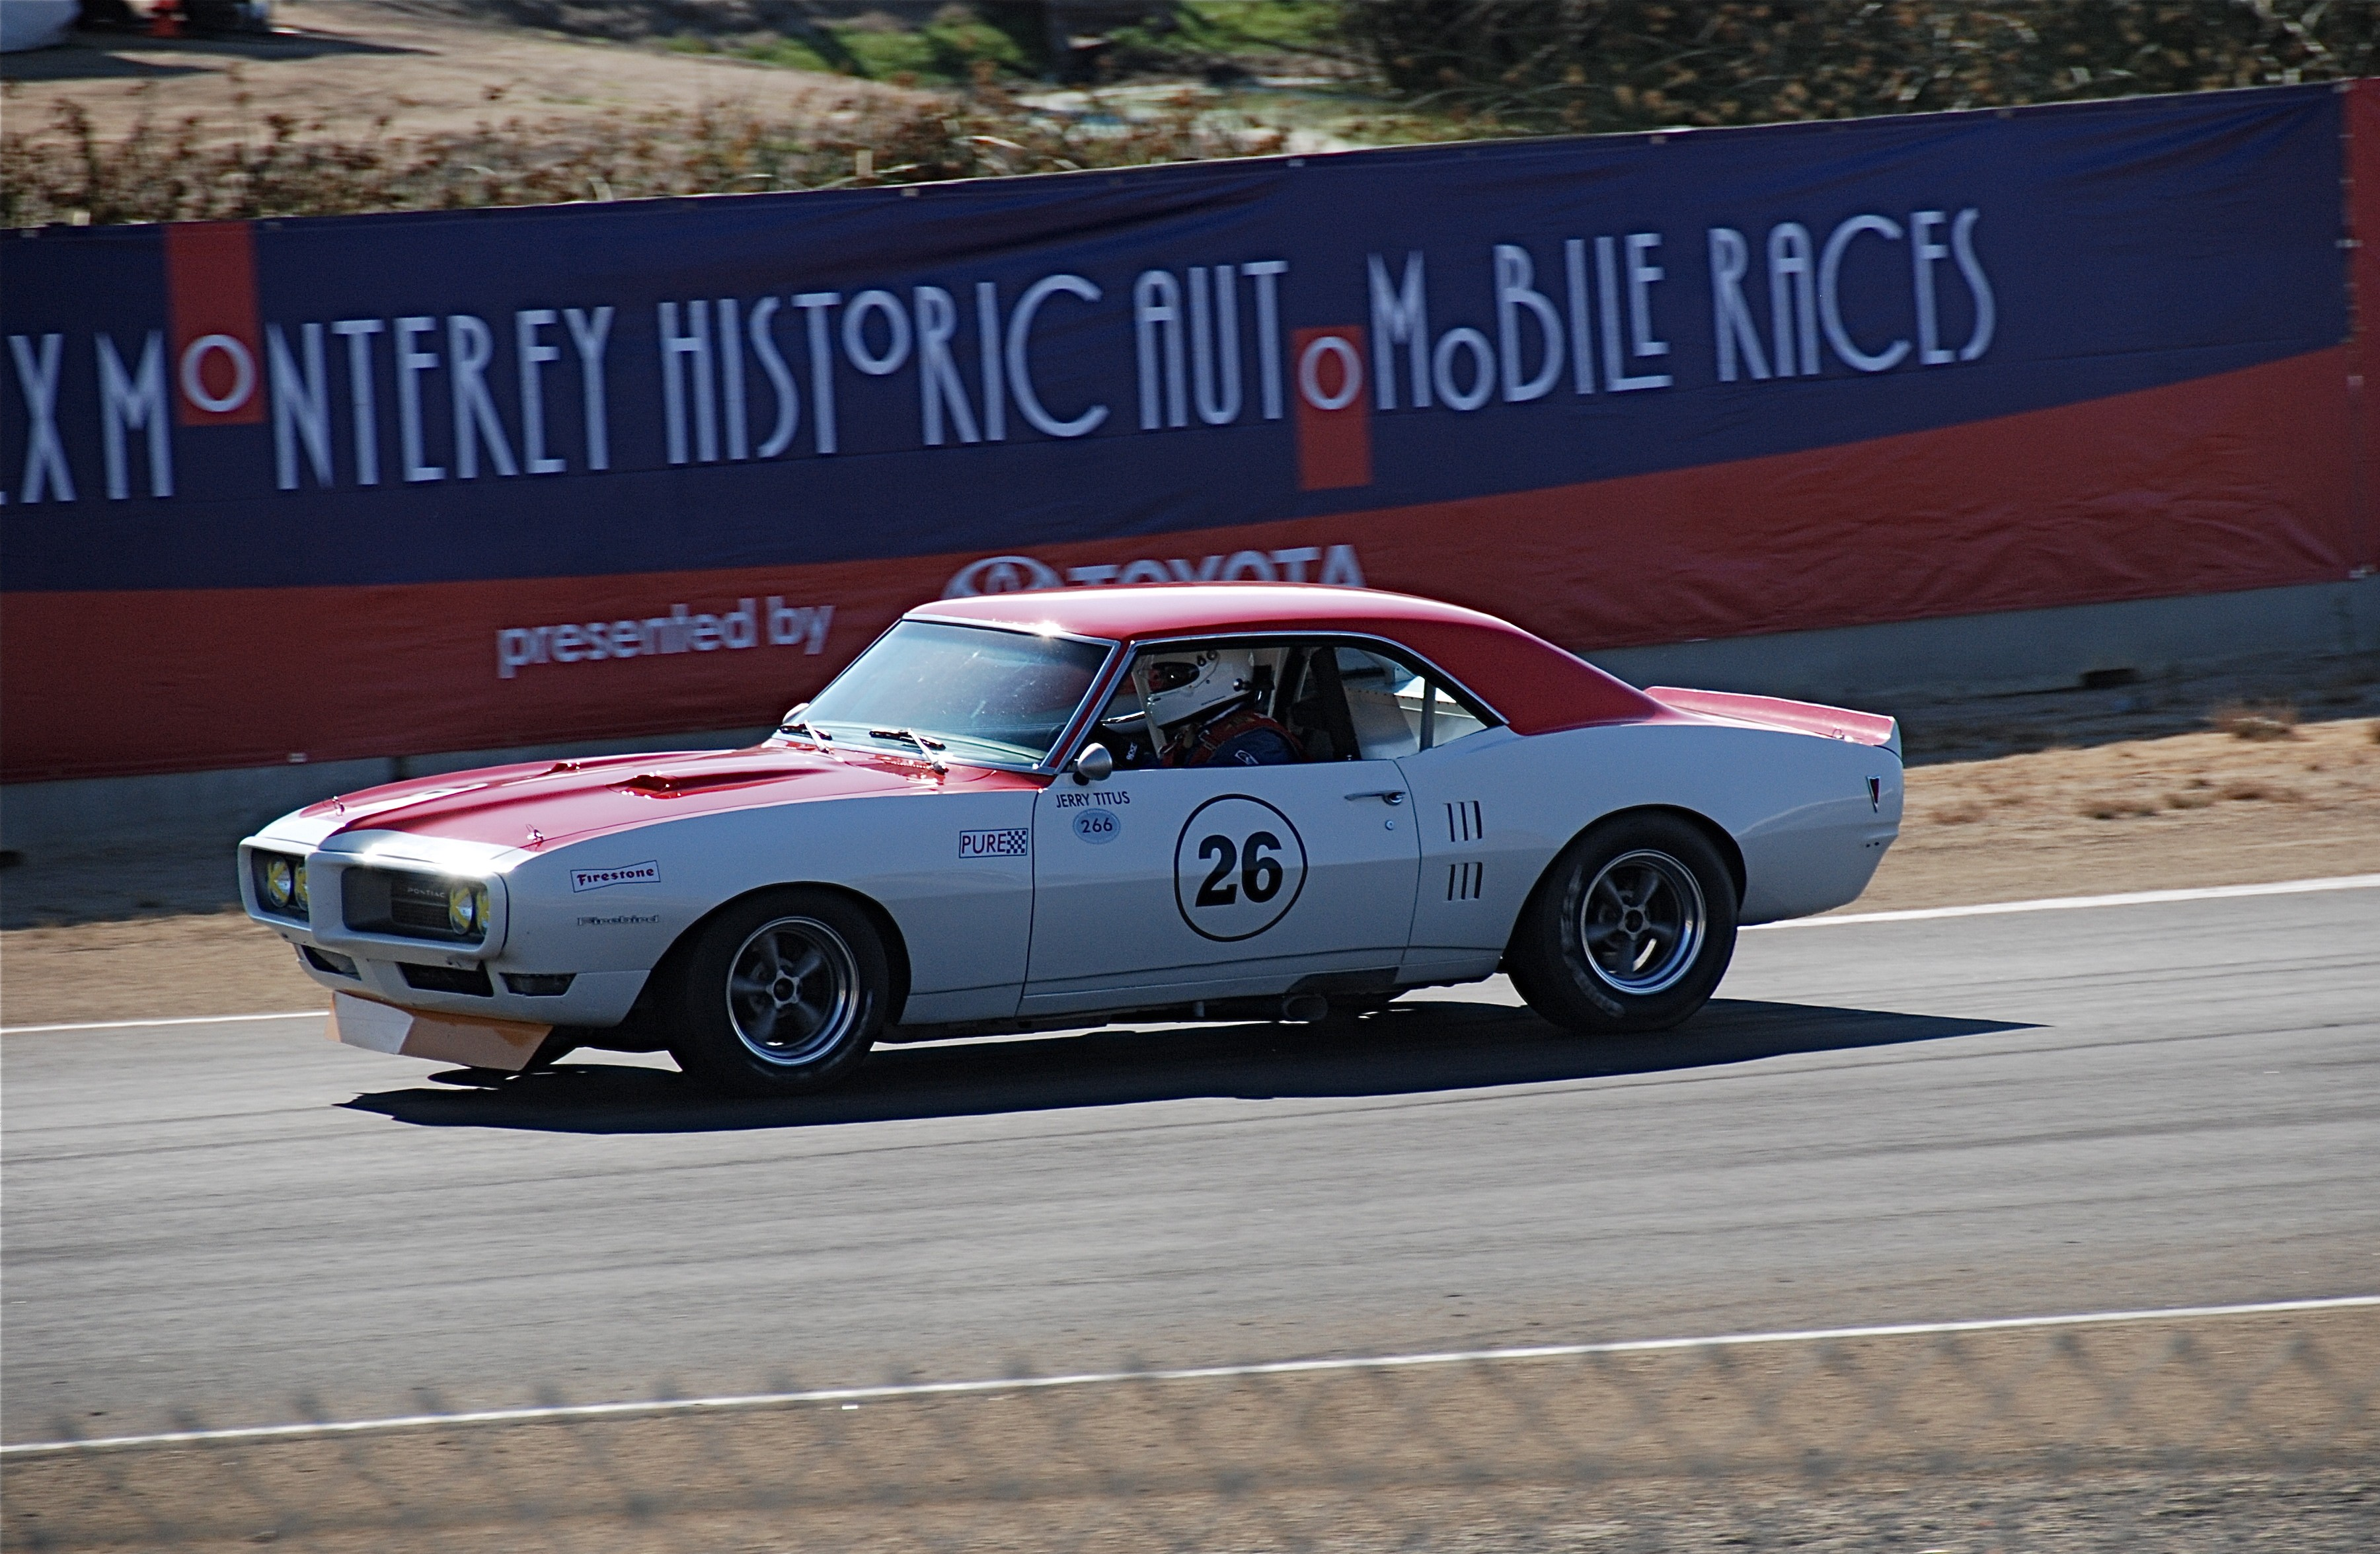 1968 Firebird Titus Vintage Trans-Am Race Car